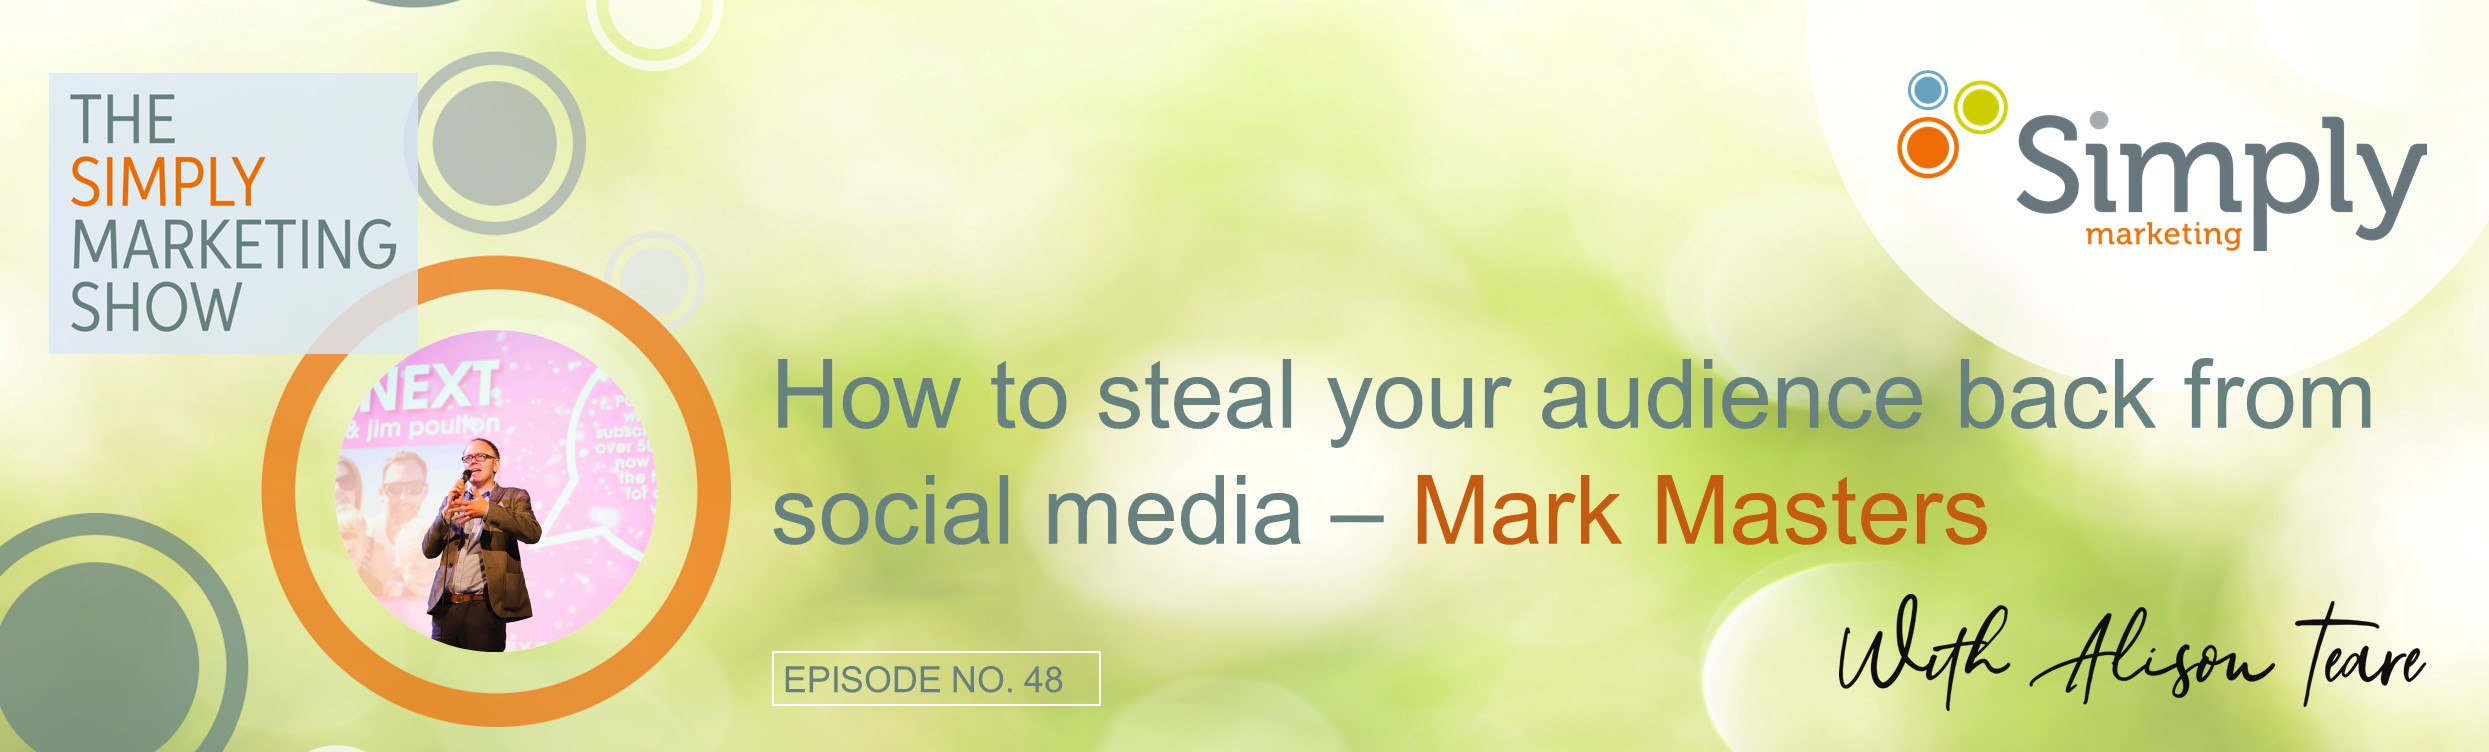 steal your sudience back